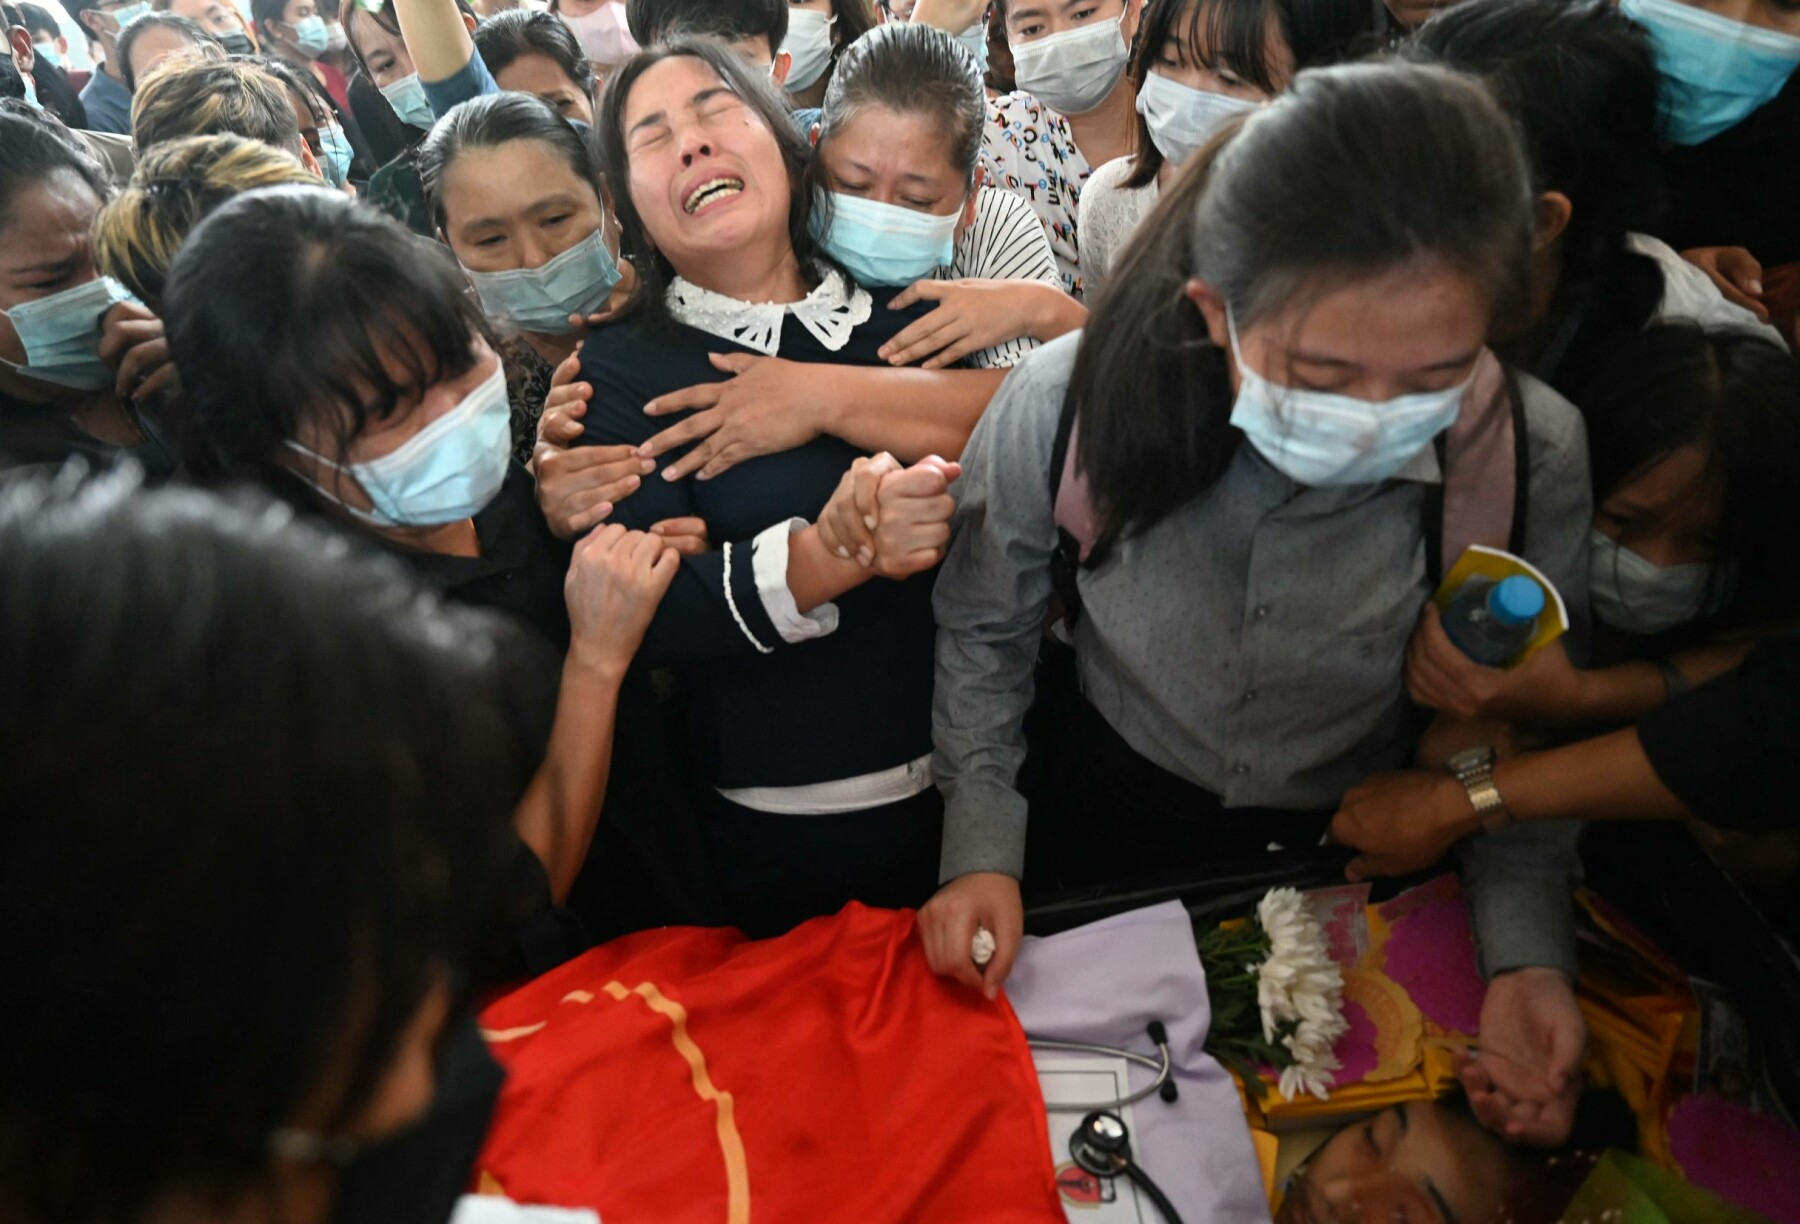 EDITORS NOTE: Graphic content / The mother (C) of Khant Nyar Hein reacts next to his body at the funeral in Yangon on March 16, 2021, after the first year medical student was shot dead during a crackdown by security forces on protesters taking part in a demonstration against the military coup. (Photo by STR / AFP)